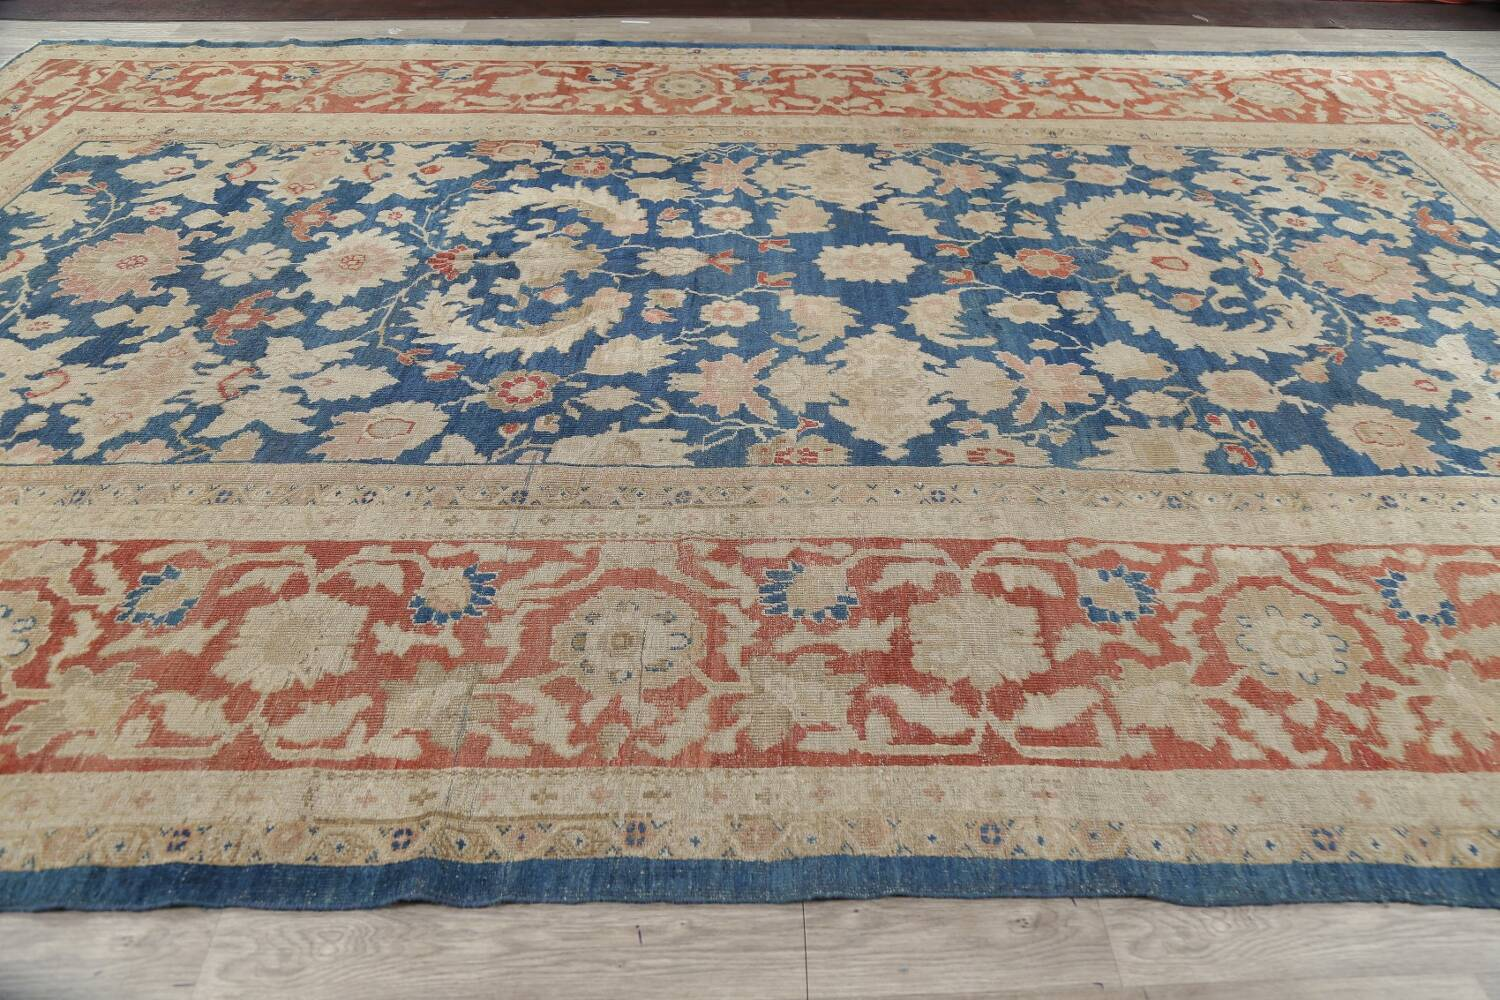 Antique Floral Sultanabad Persian Area Rug 10x16 Large image 17